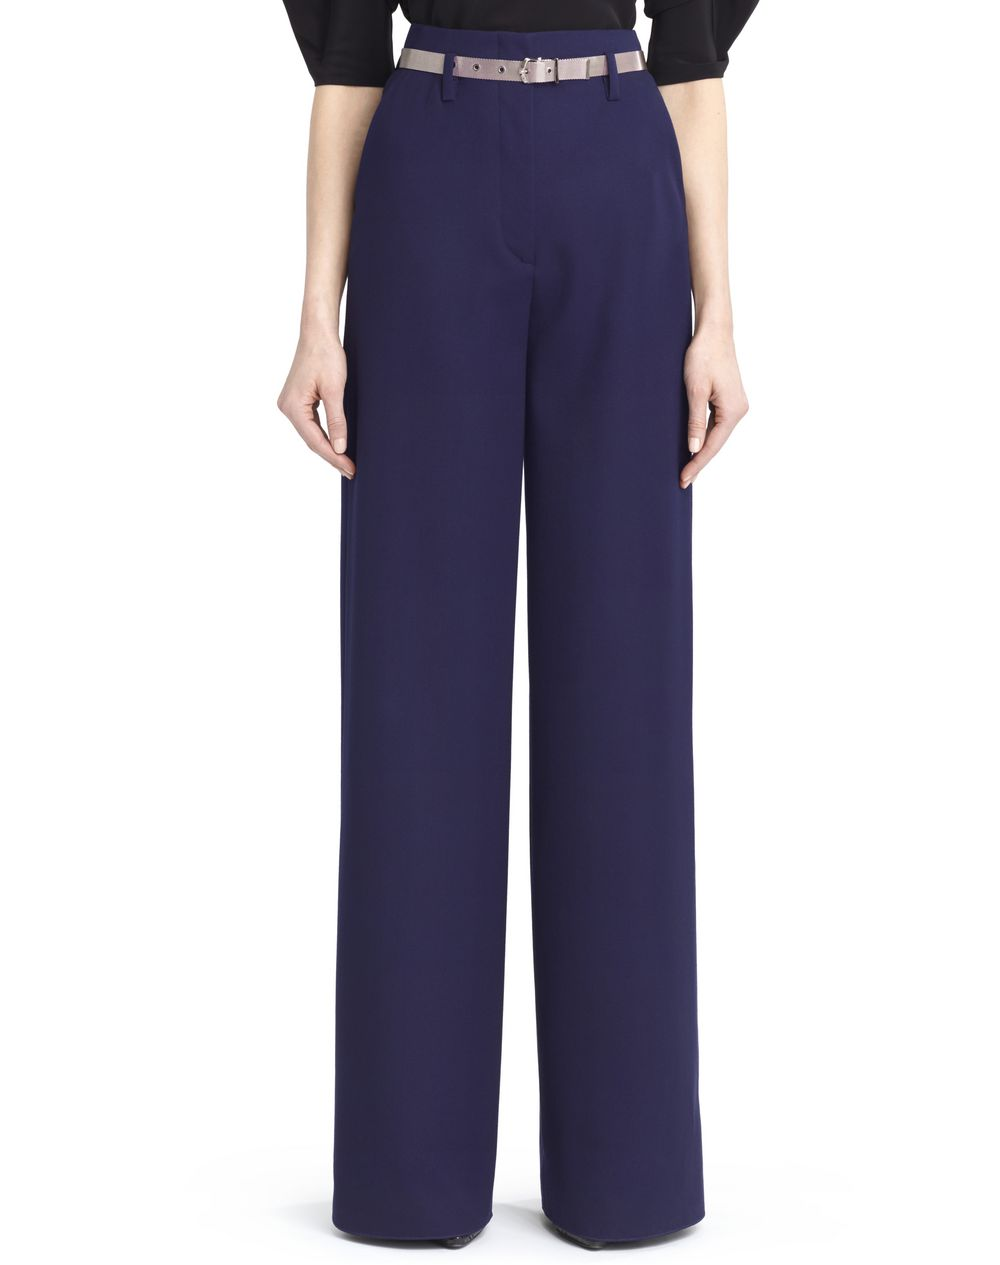 HAMMERED CREPE PANTS - Lanvin